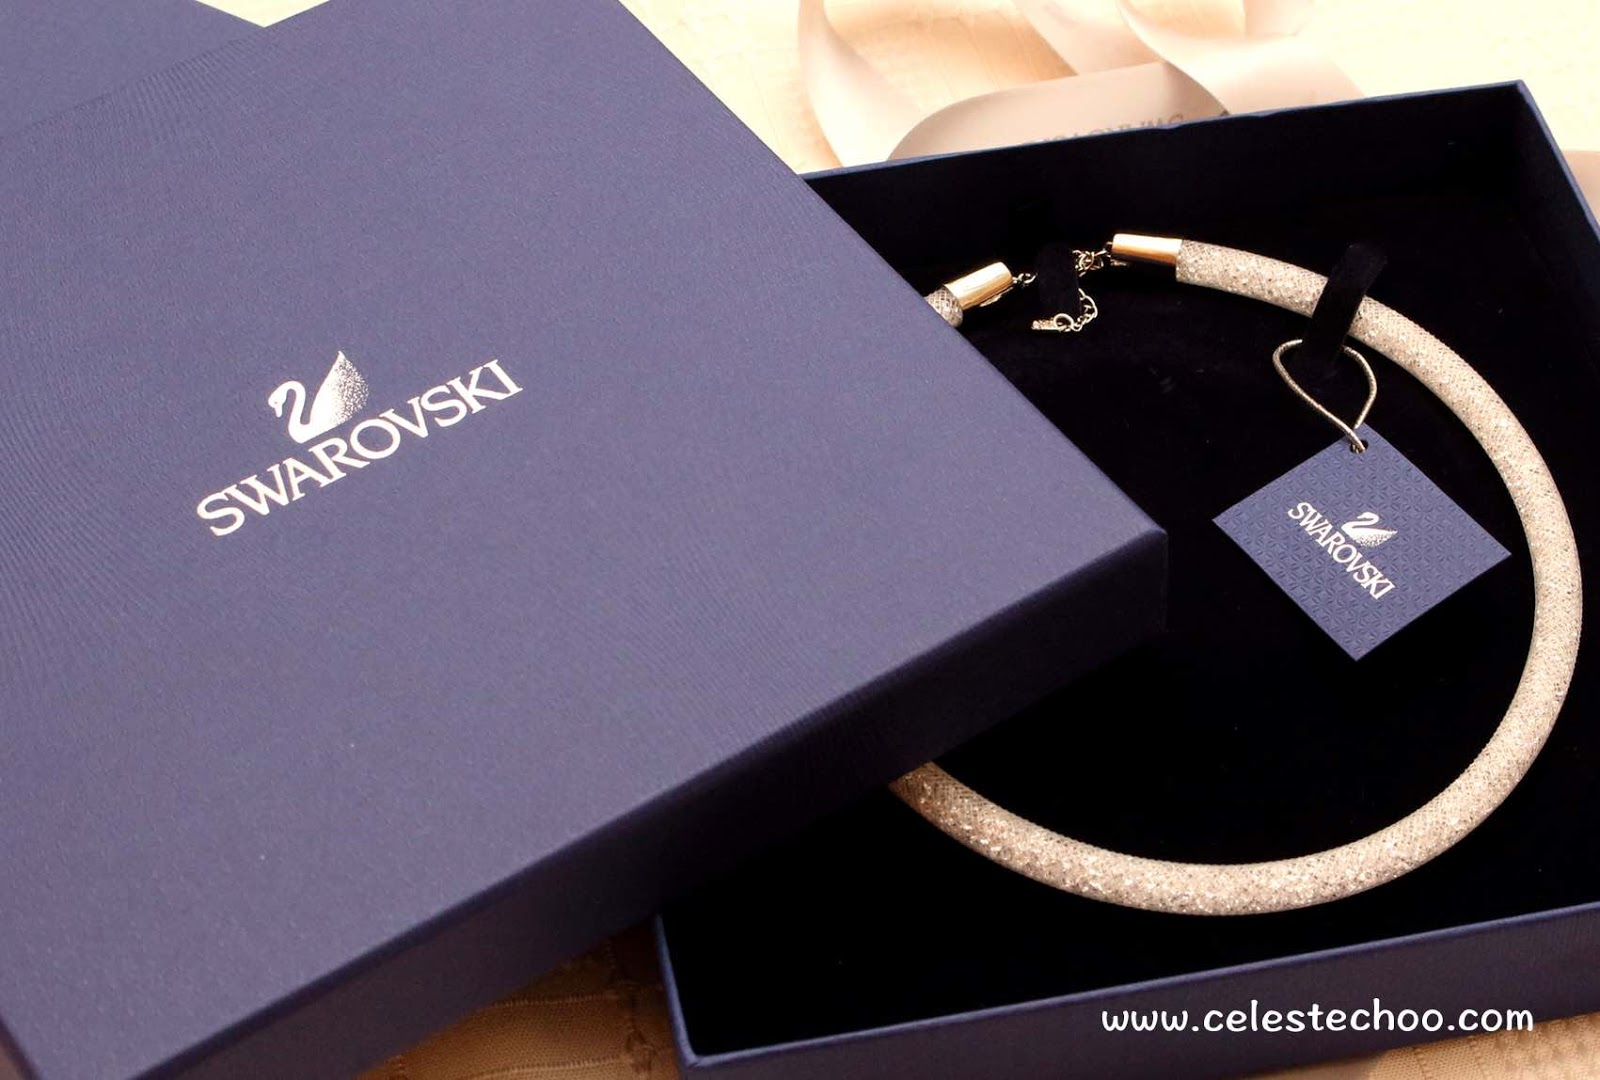 CelesteChoocom Swarovski Stardust Fashion Necklace